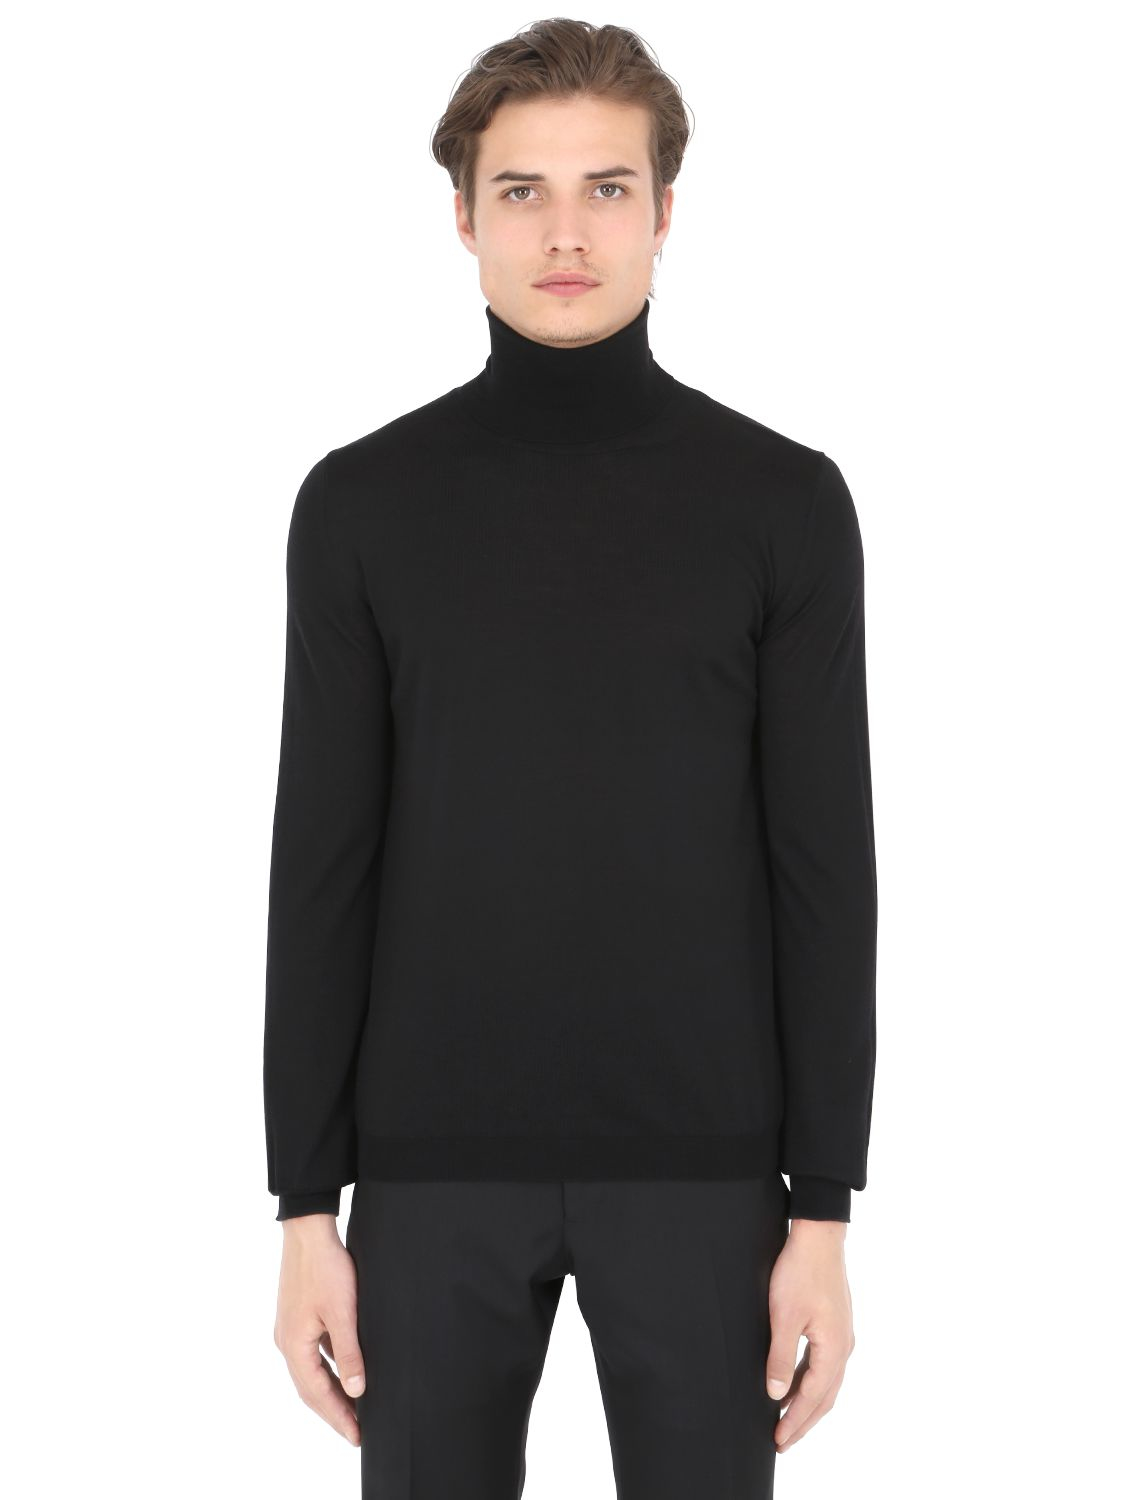 Shop the Latest Collection of Turtleneck Sweaters for Men Online at gtacashbank.ga FREE SHIPPING AVAILABLE!